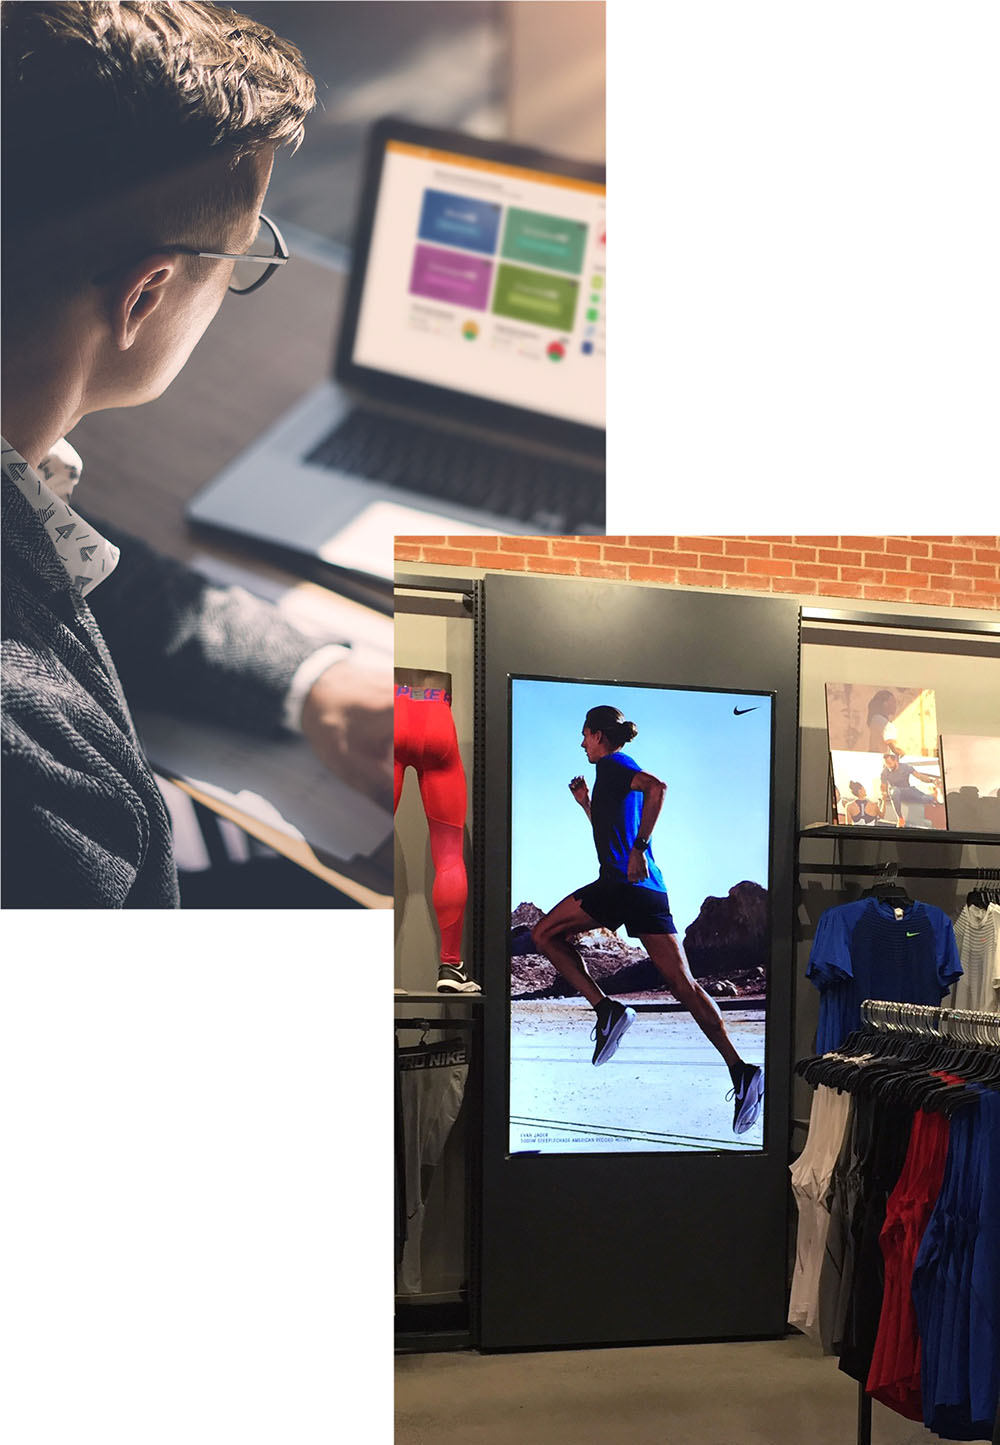 Digital Signage in Retail Setting